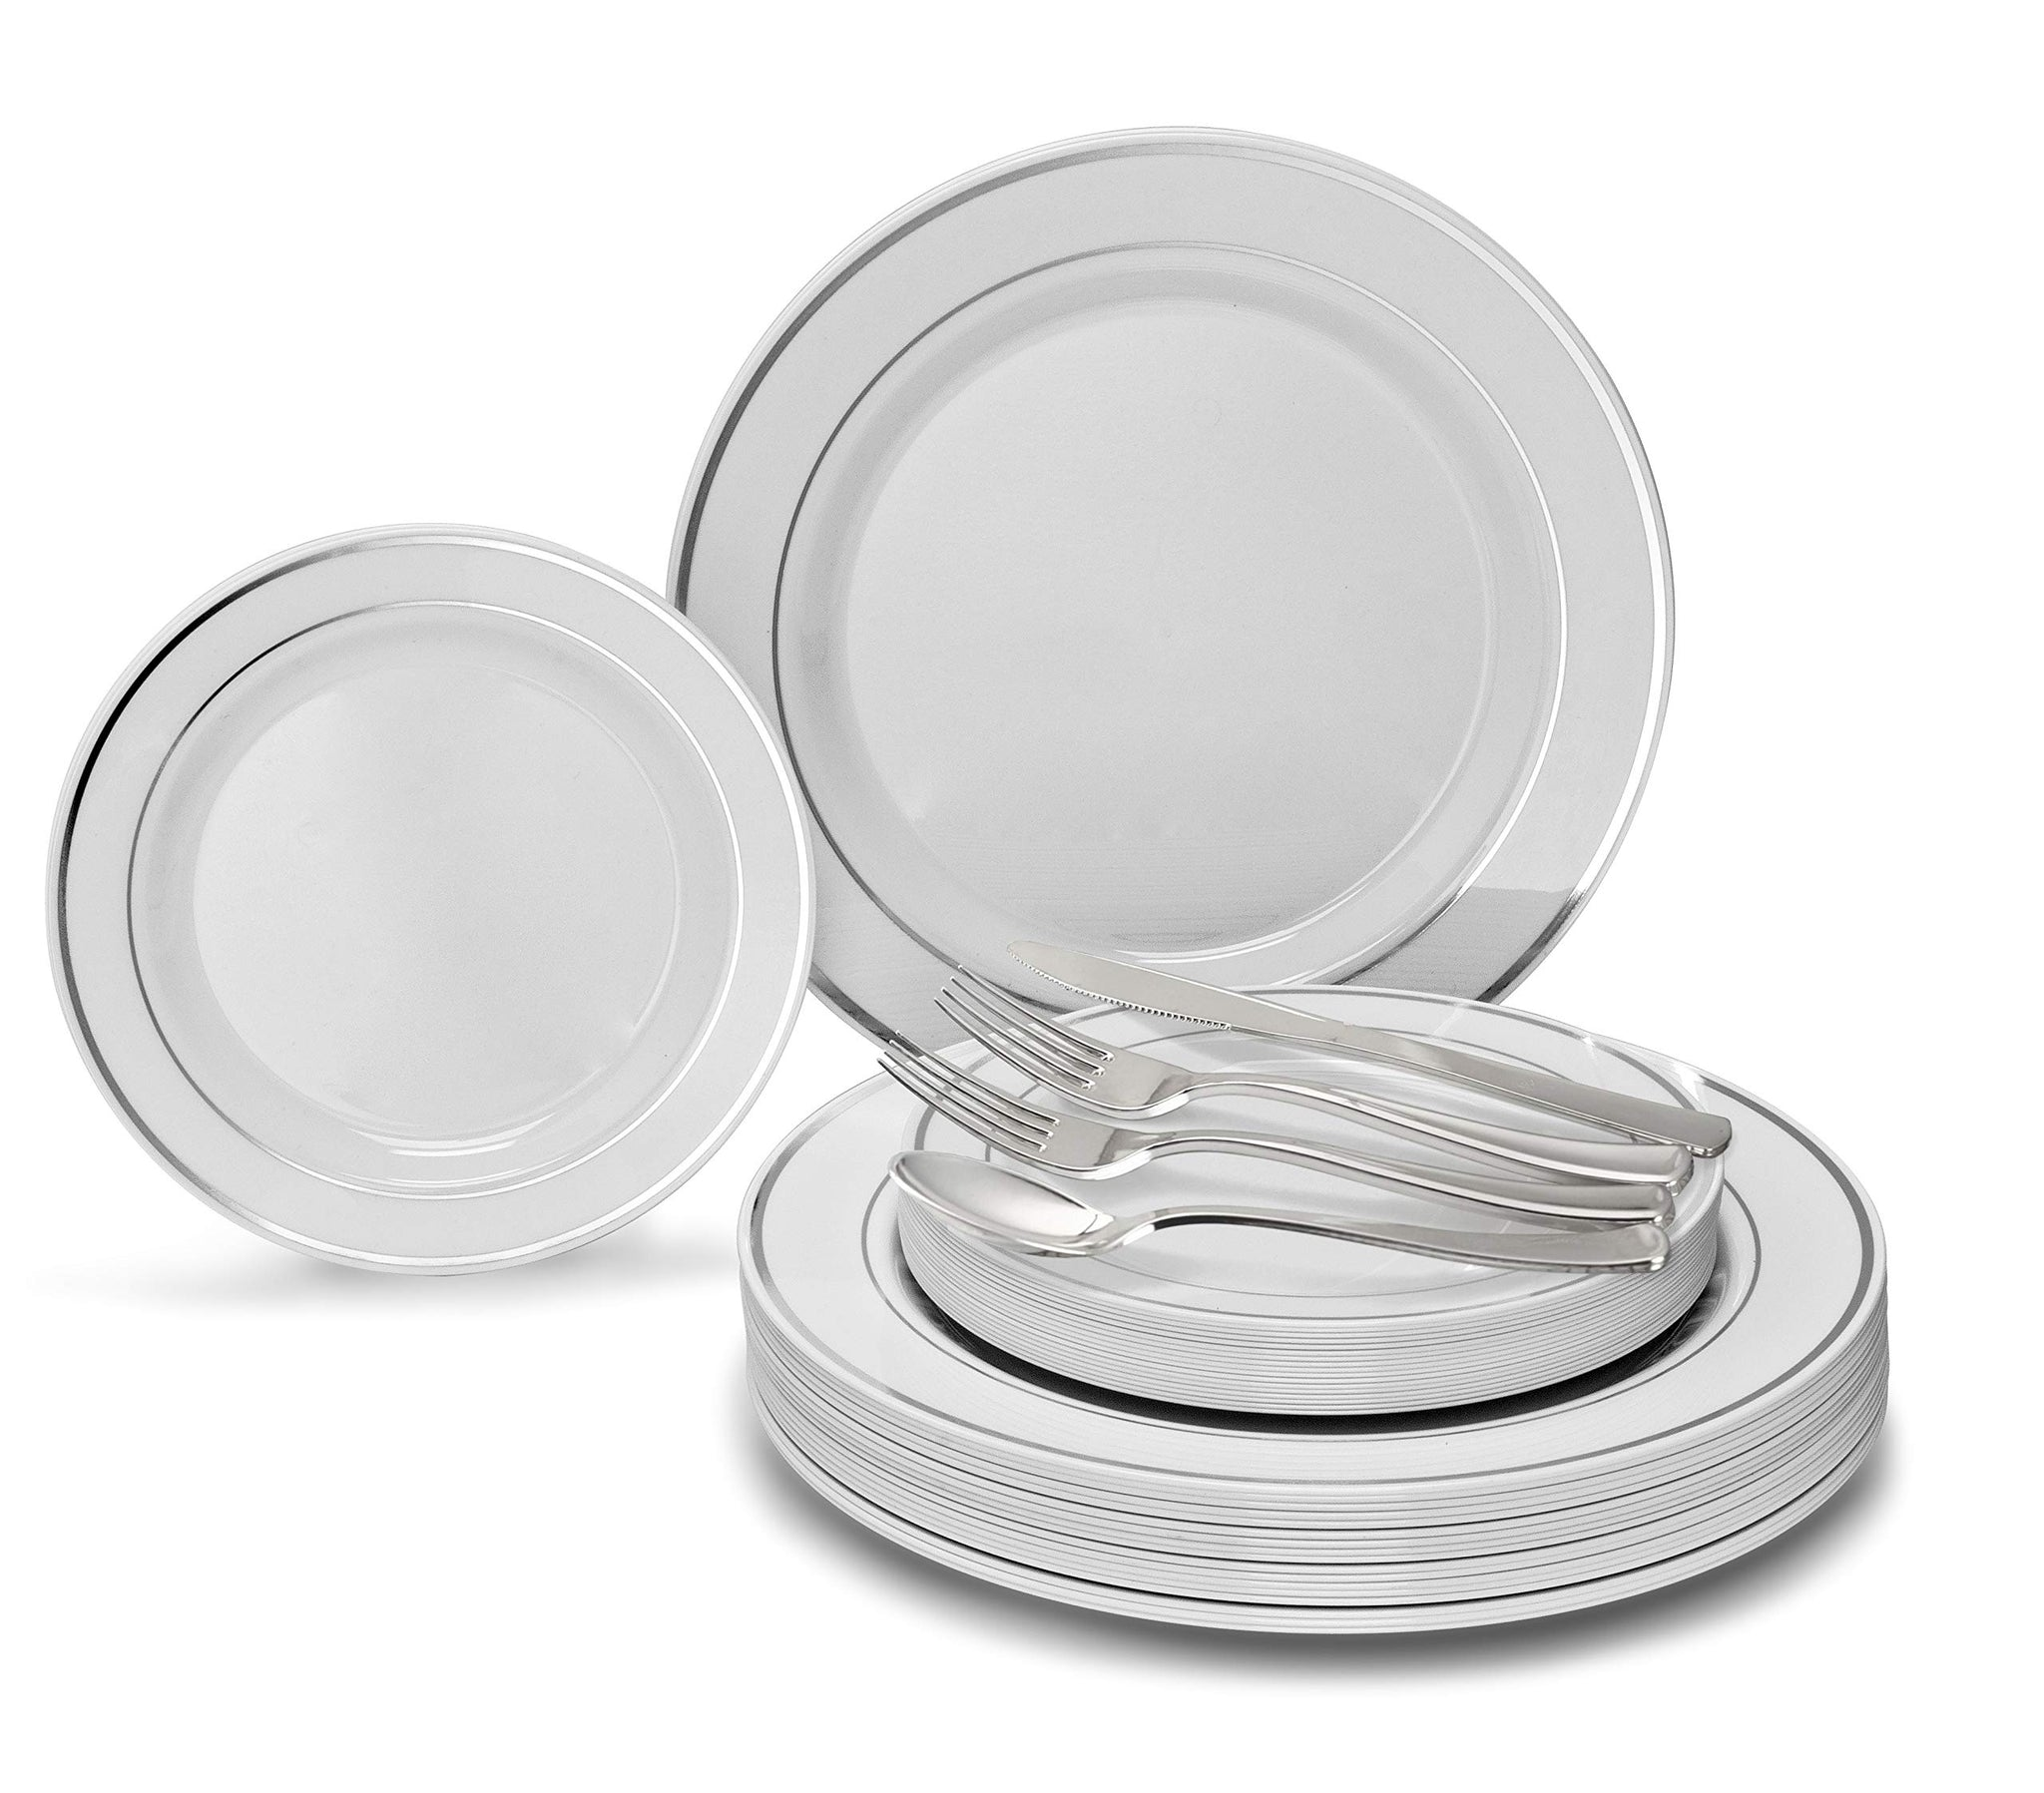 """ OCCASIONS"" 720 PCS / 120 GUEST Wedding Disposable Plastic Plate and Silverware Combo Set, (White/Silver Rim plates, Silver silverware)"